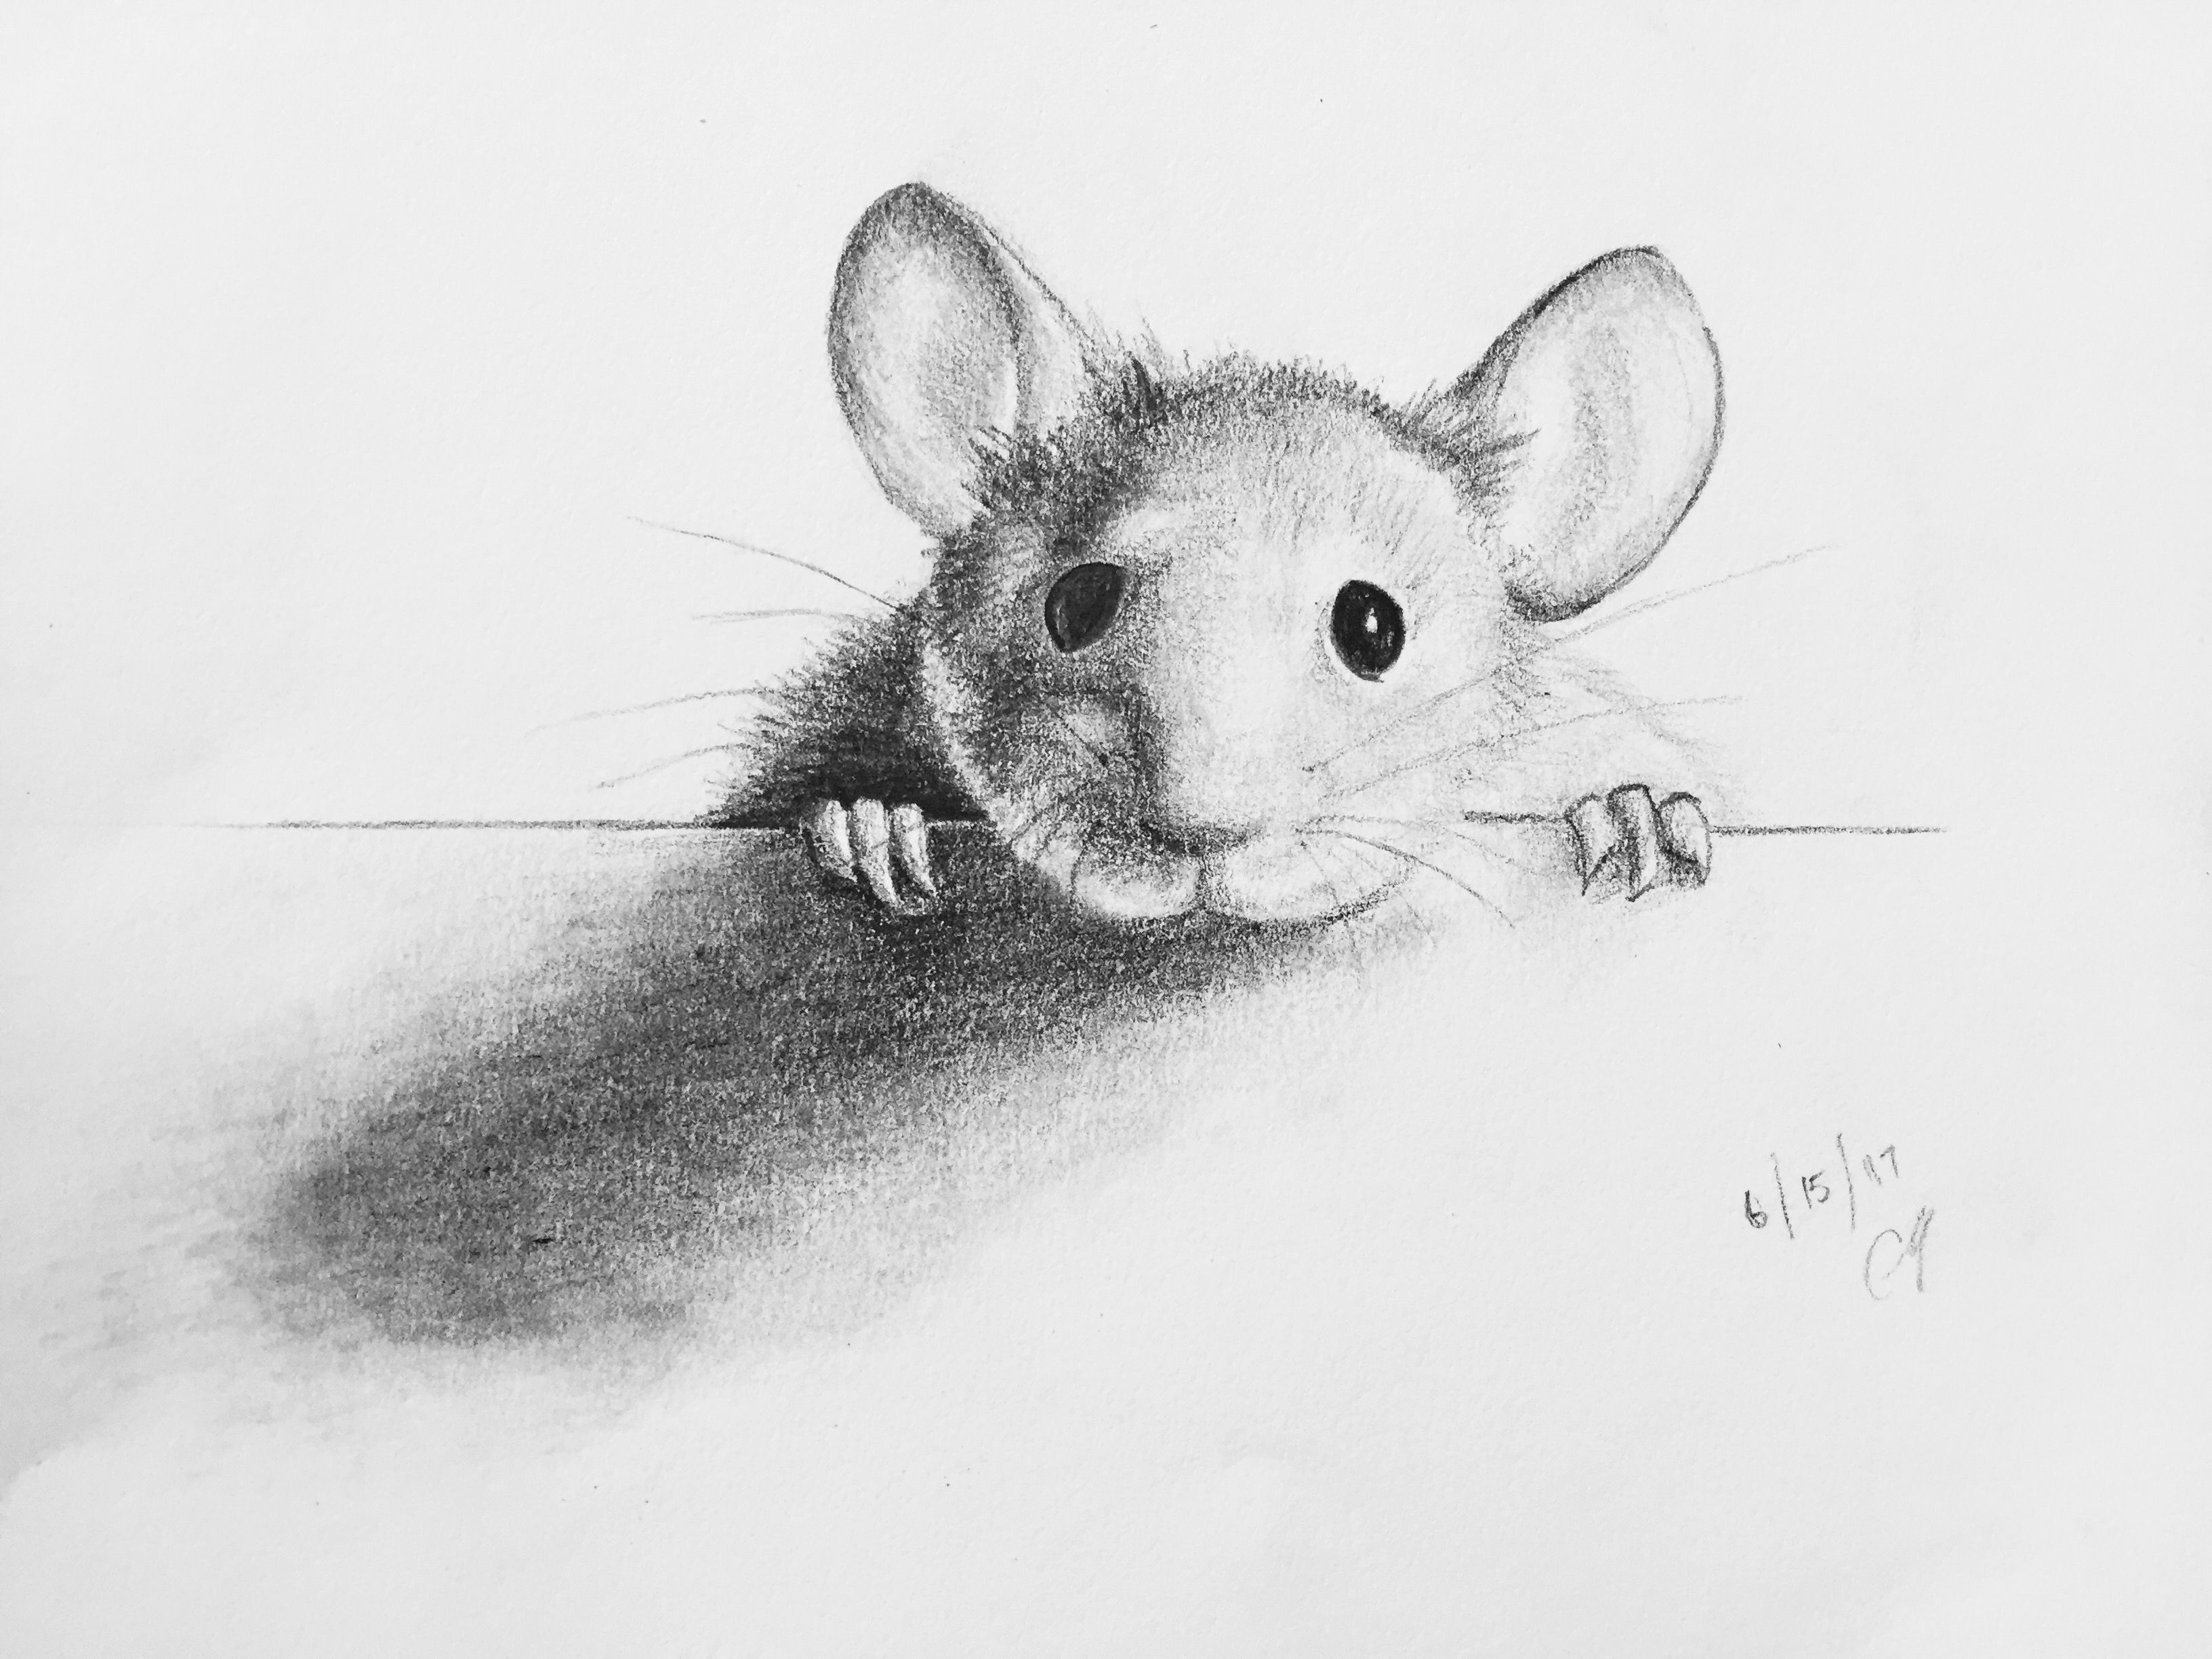 Pencil sketch of a mouse